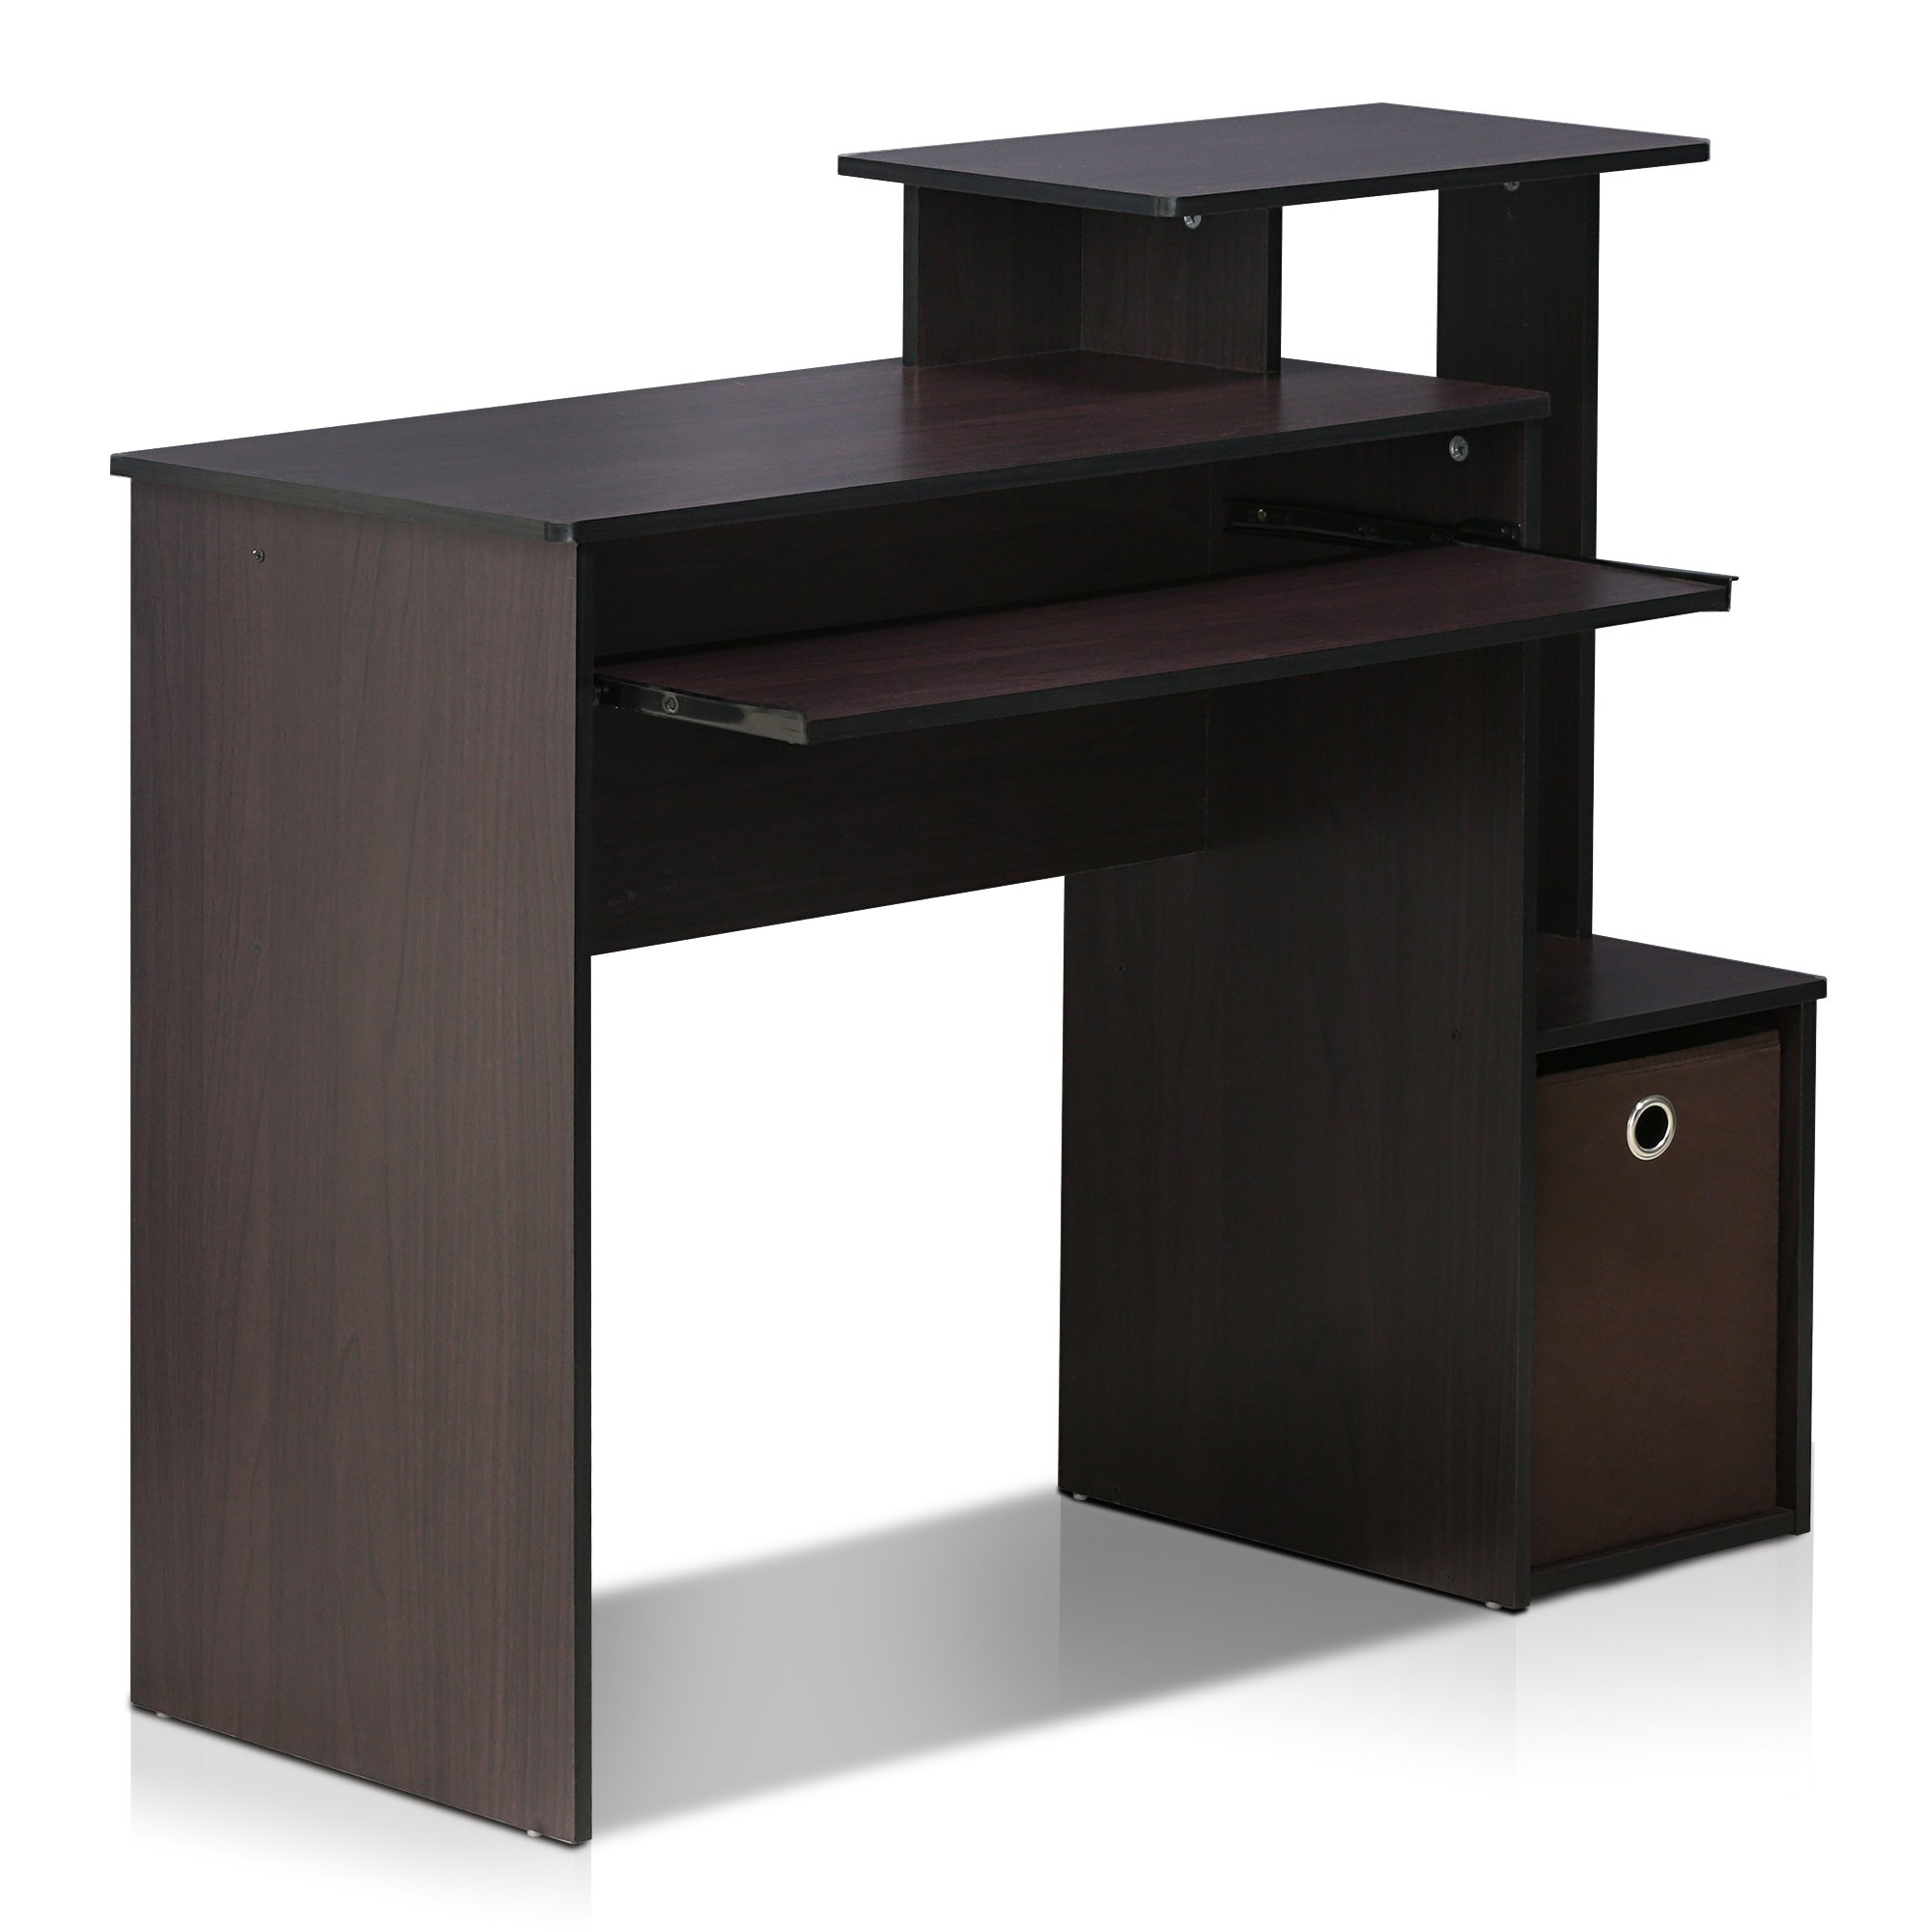 Simple Stylish Design Multipurpose Home Office Computer Writing Student Desk in Dark Walnut Finish